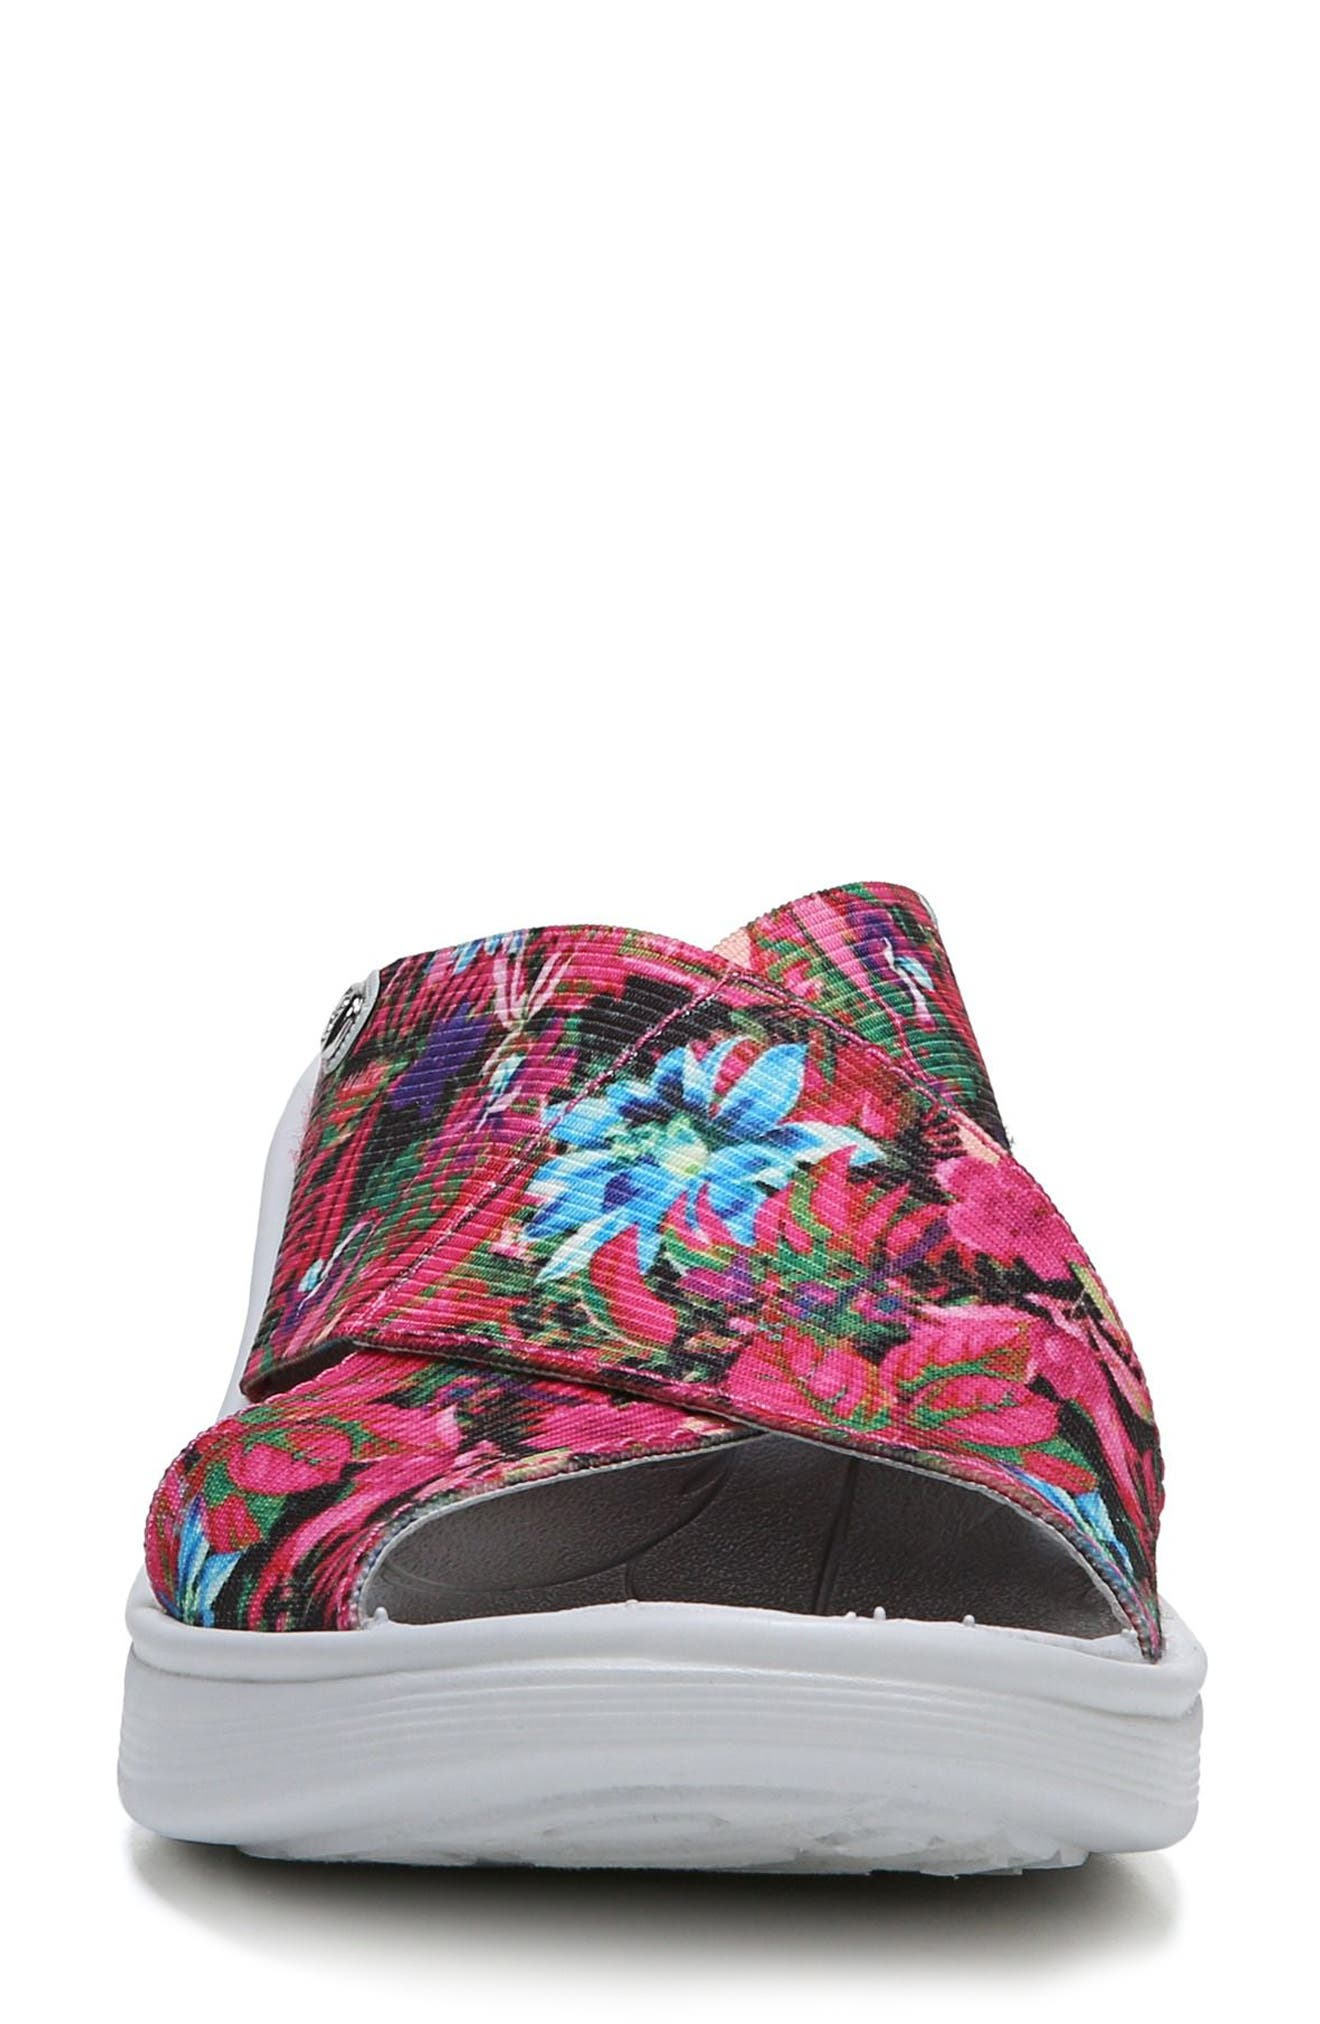 'Desire' Wedge Sandal,                             Alternate thumbnail 4, color,                             Pink Floral Fabric